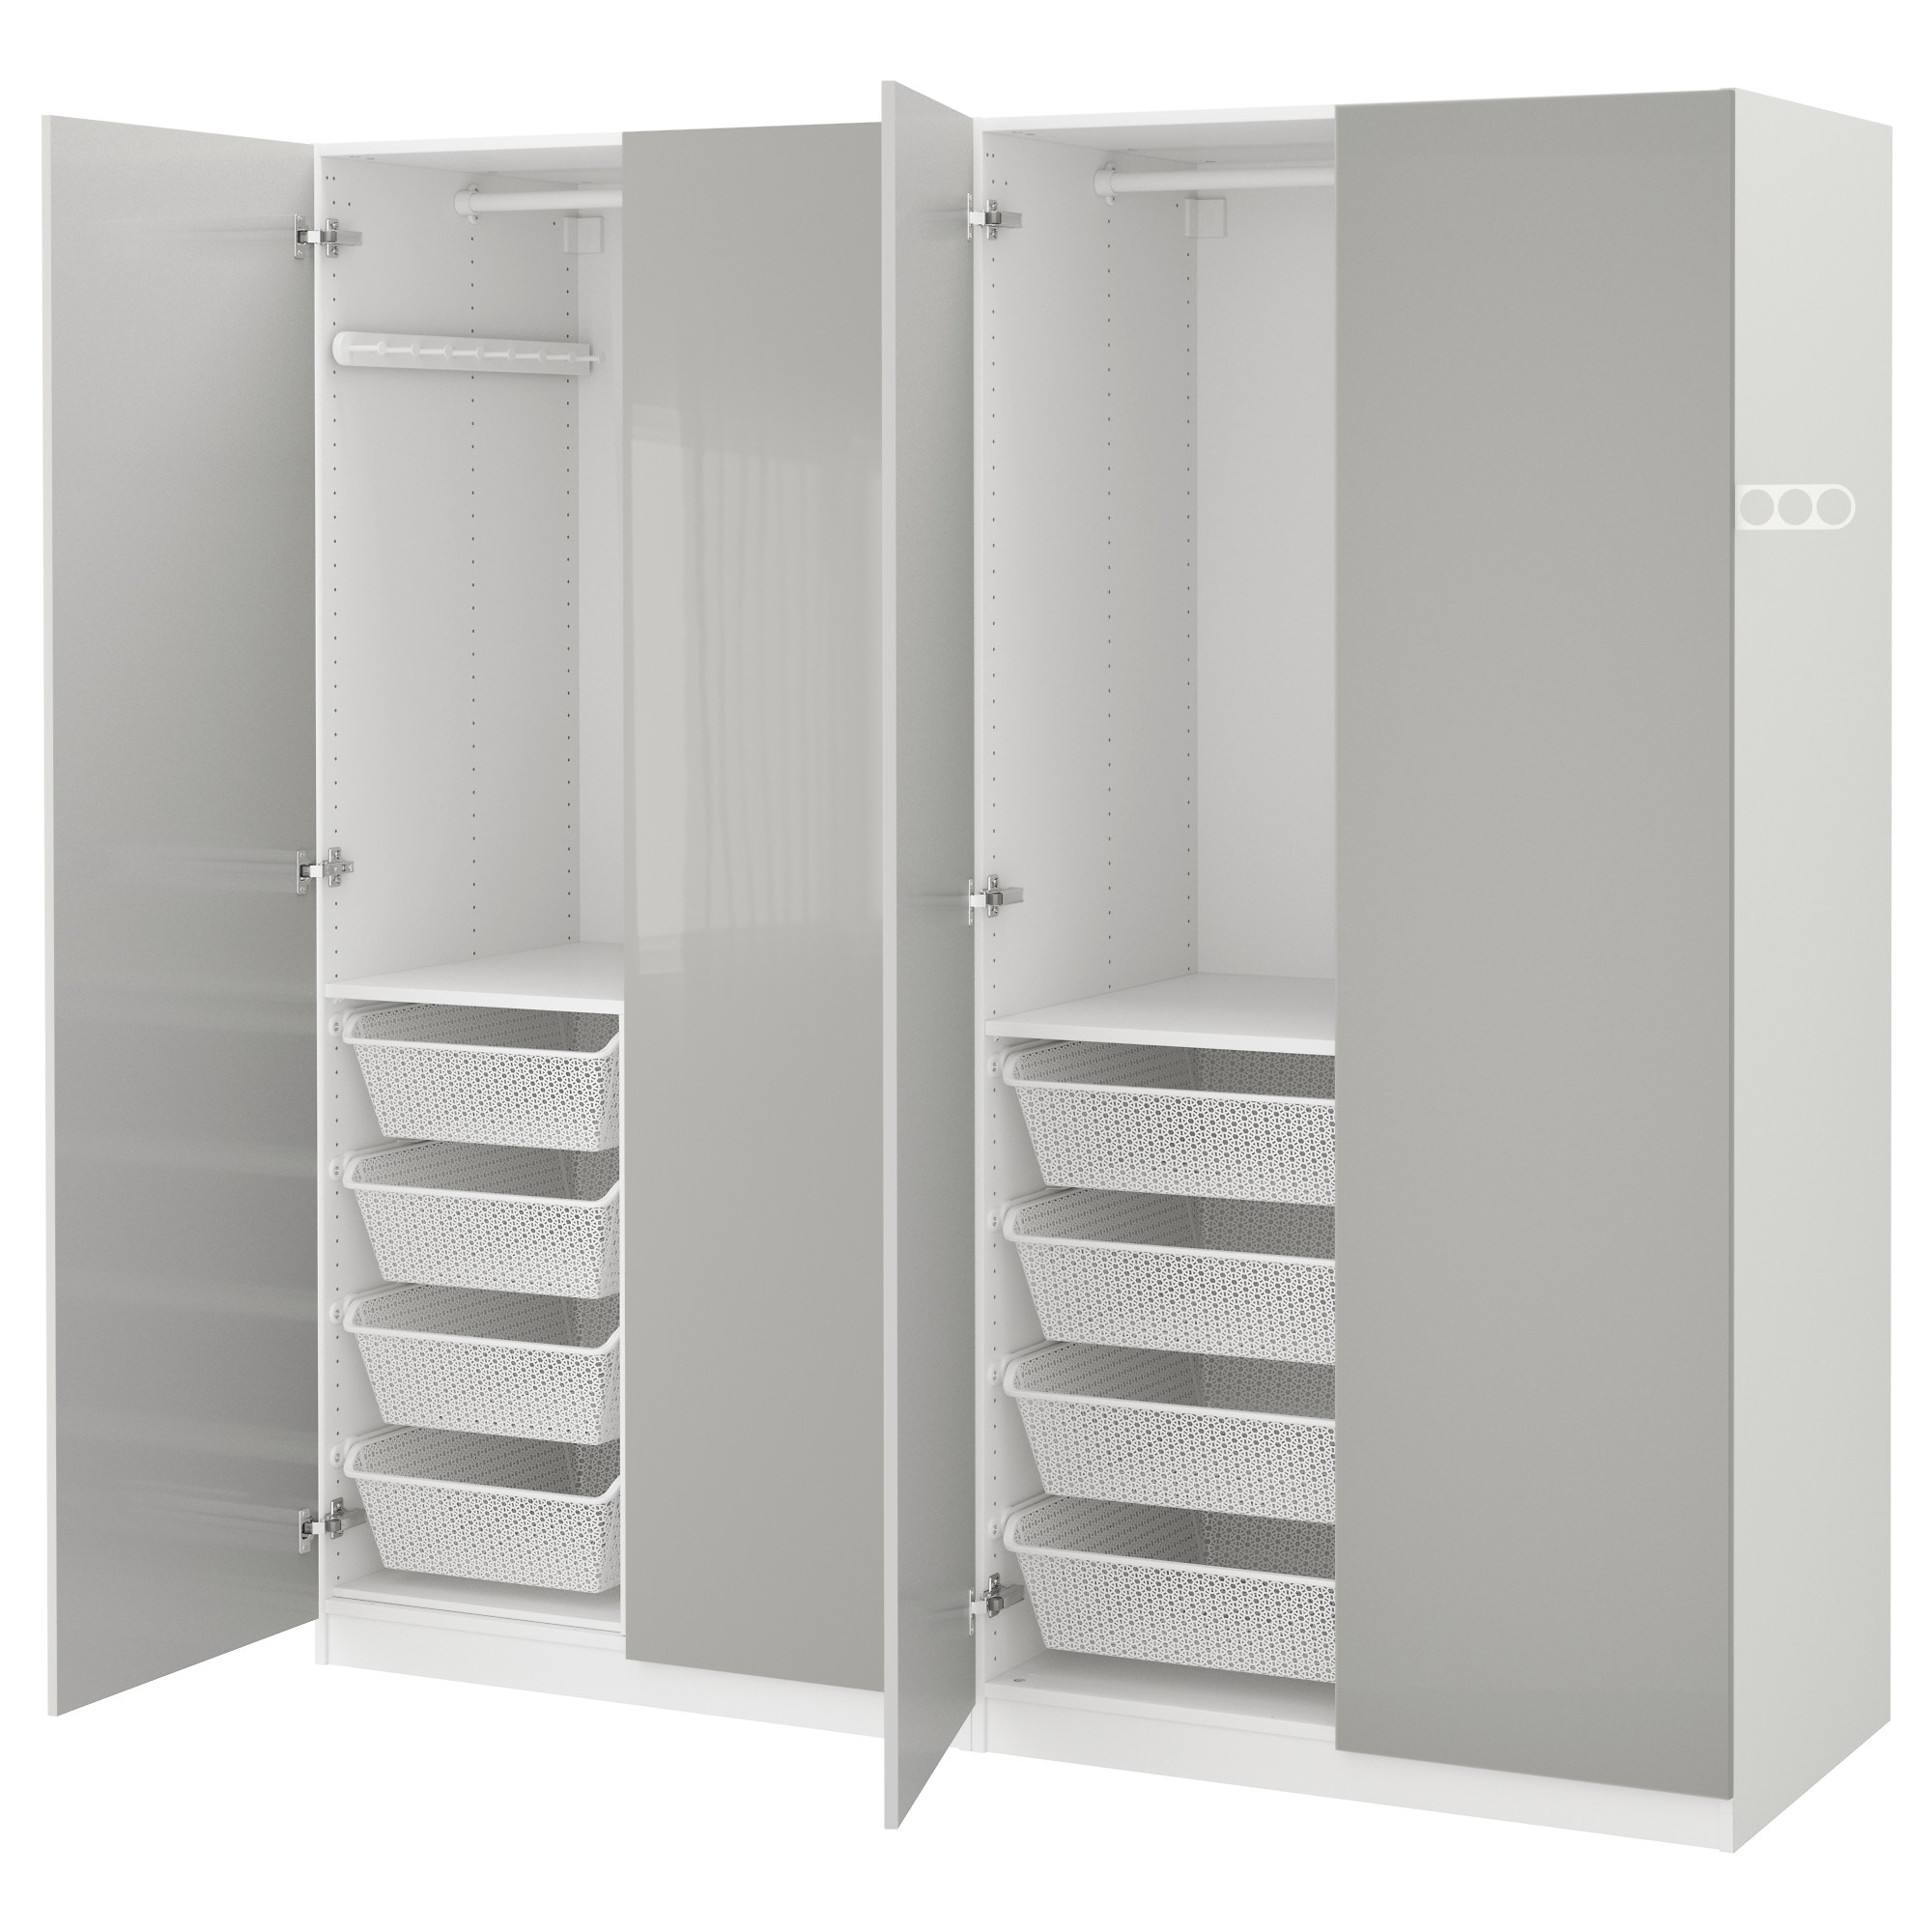 Ideal PAX wardrobe white Fardal high gloss light gray Width